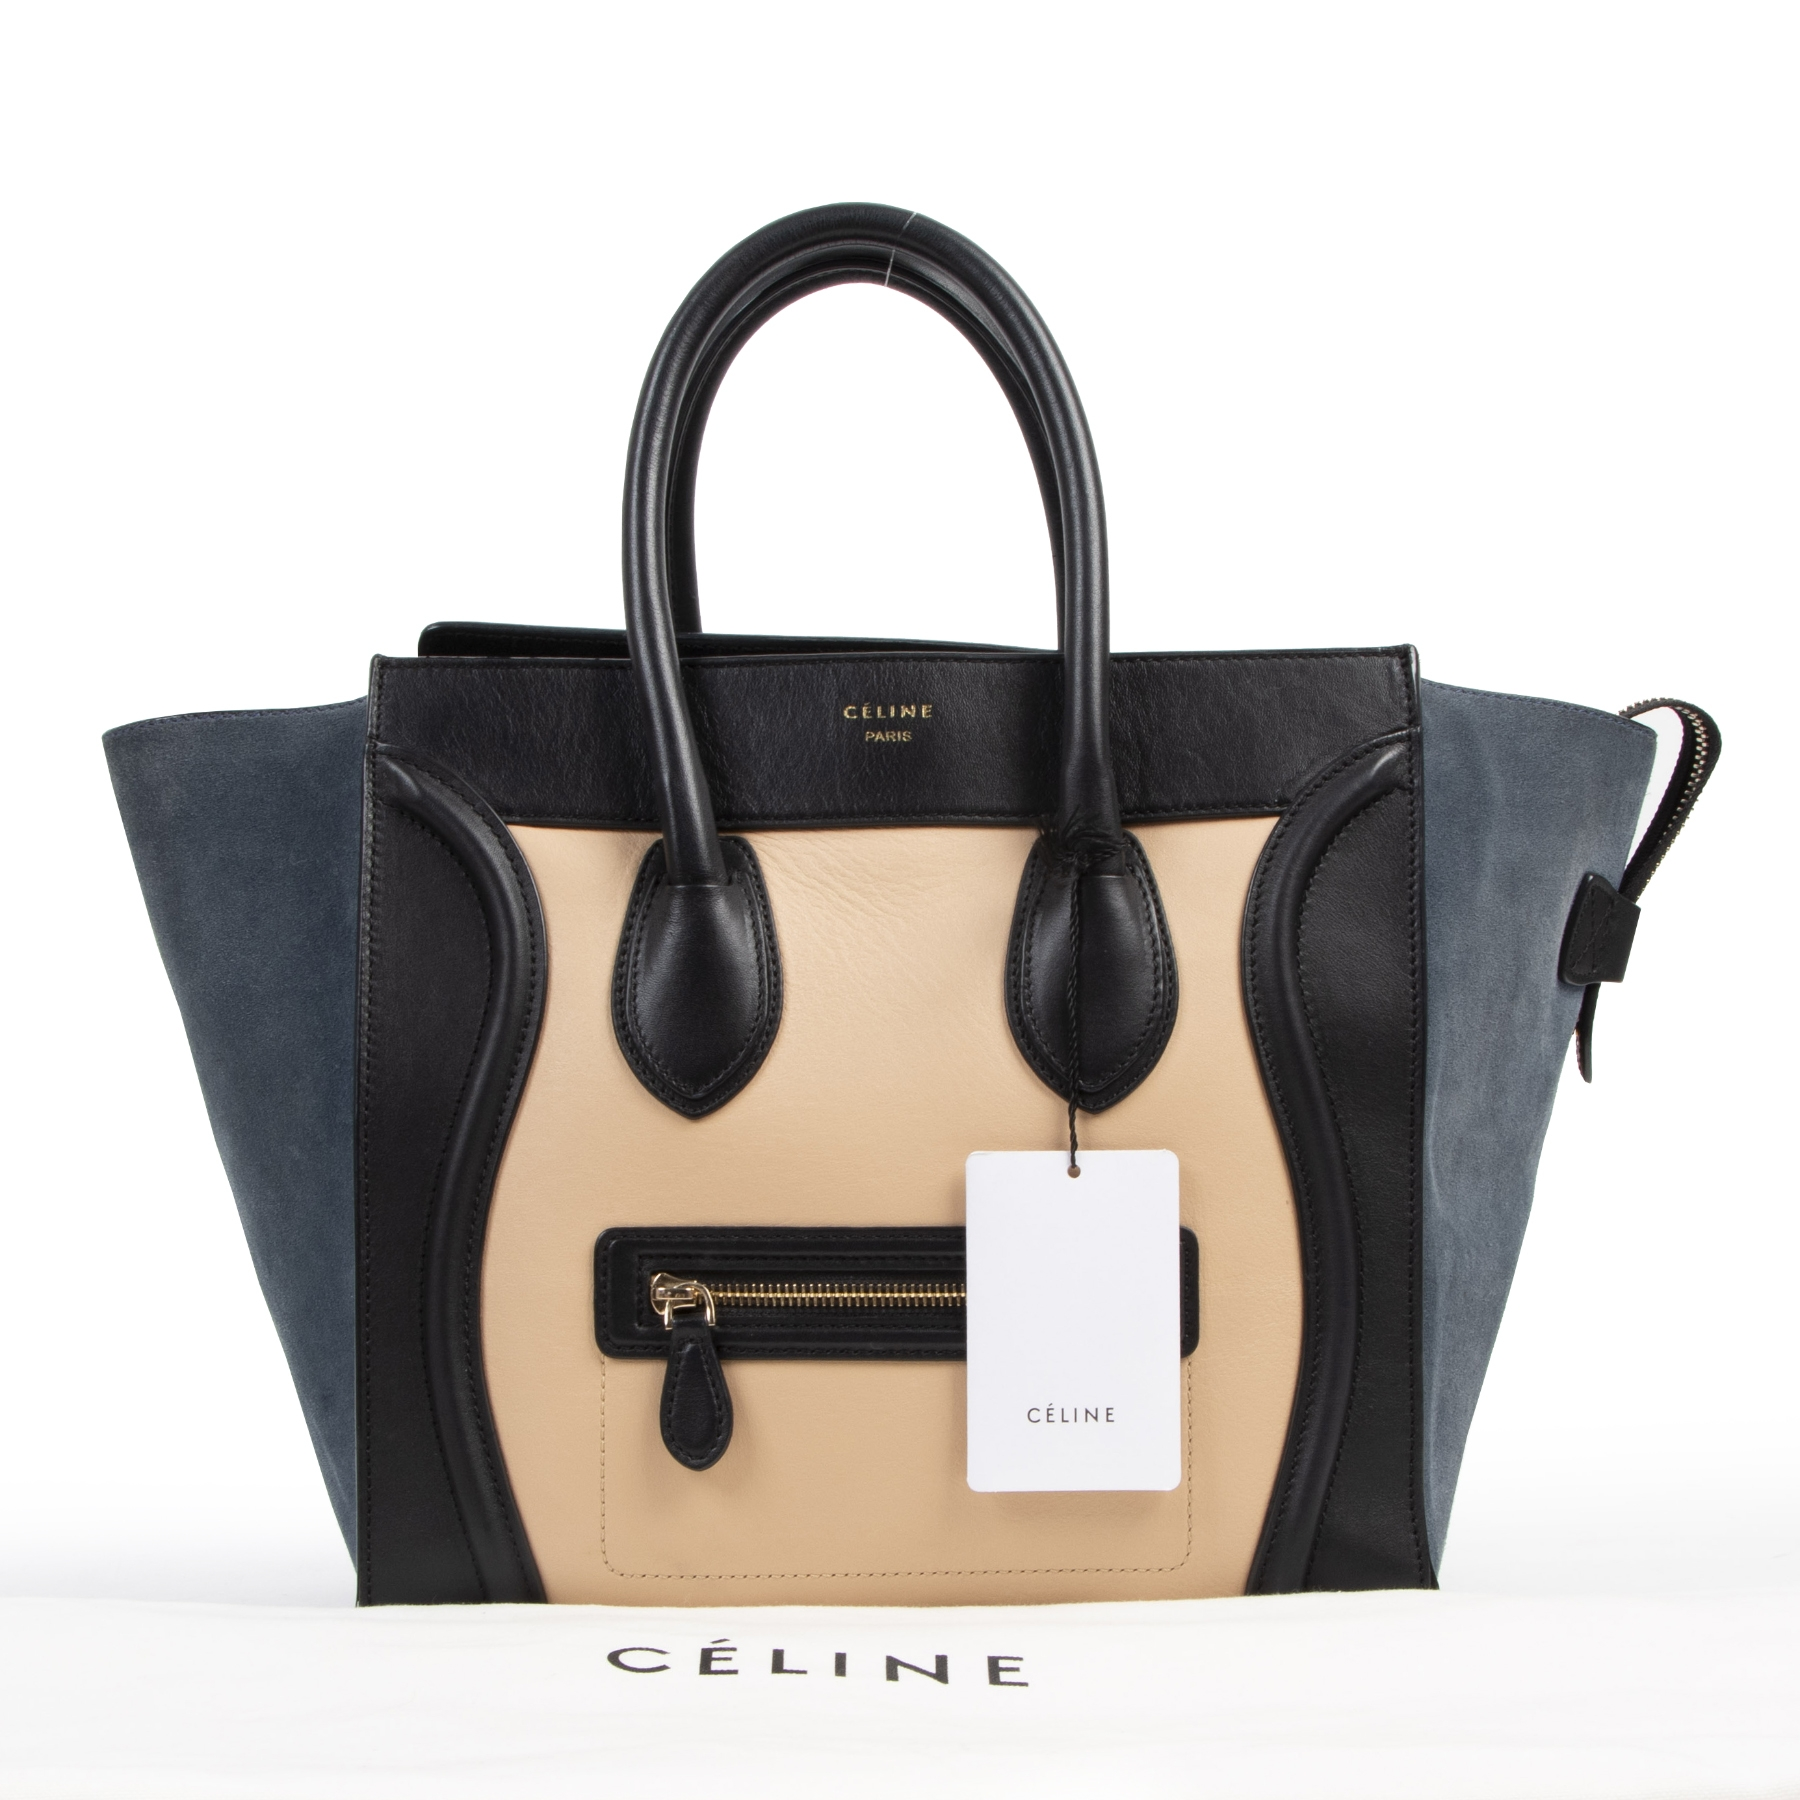 Authentieke tweedehands vintage Céline Tri-Color Leather Mini Luggage Tote Bag koop online webshop LabelLOV